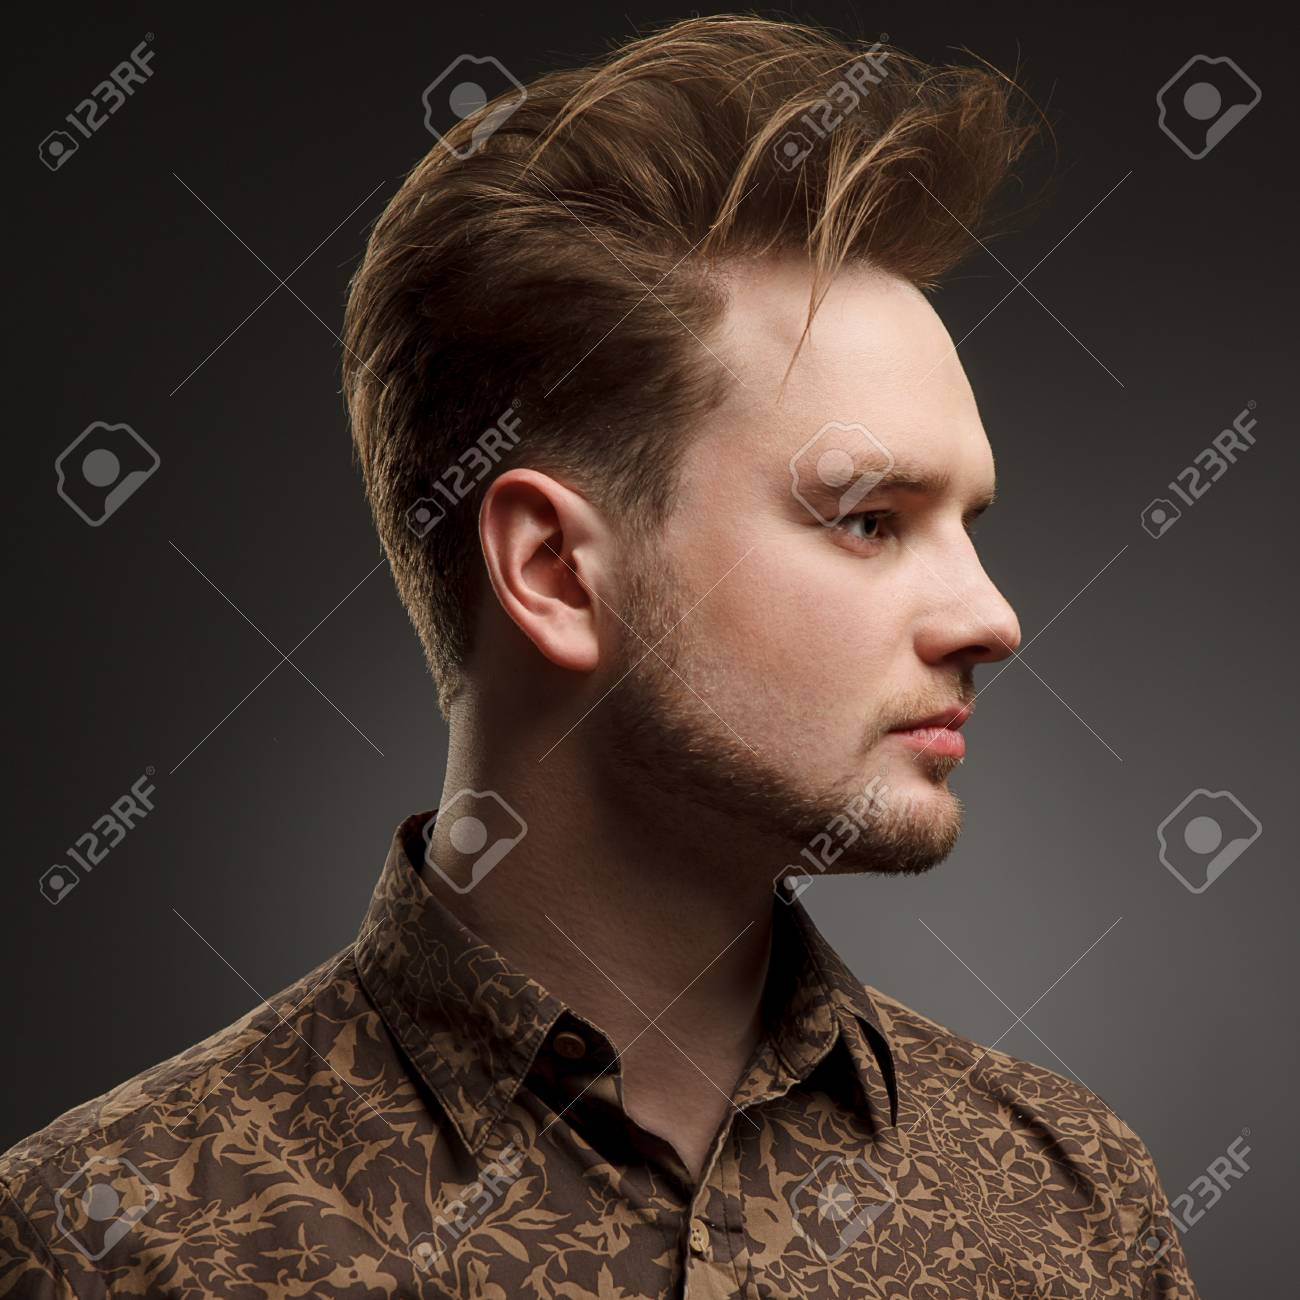 Man Haircut Stylish Young Man With Trendy Hairstyle Pose In Stock